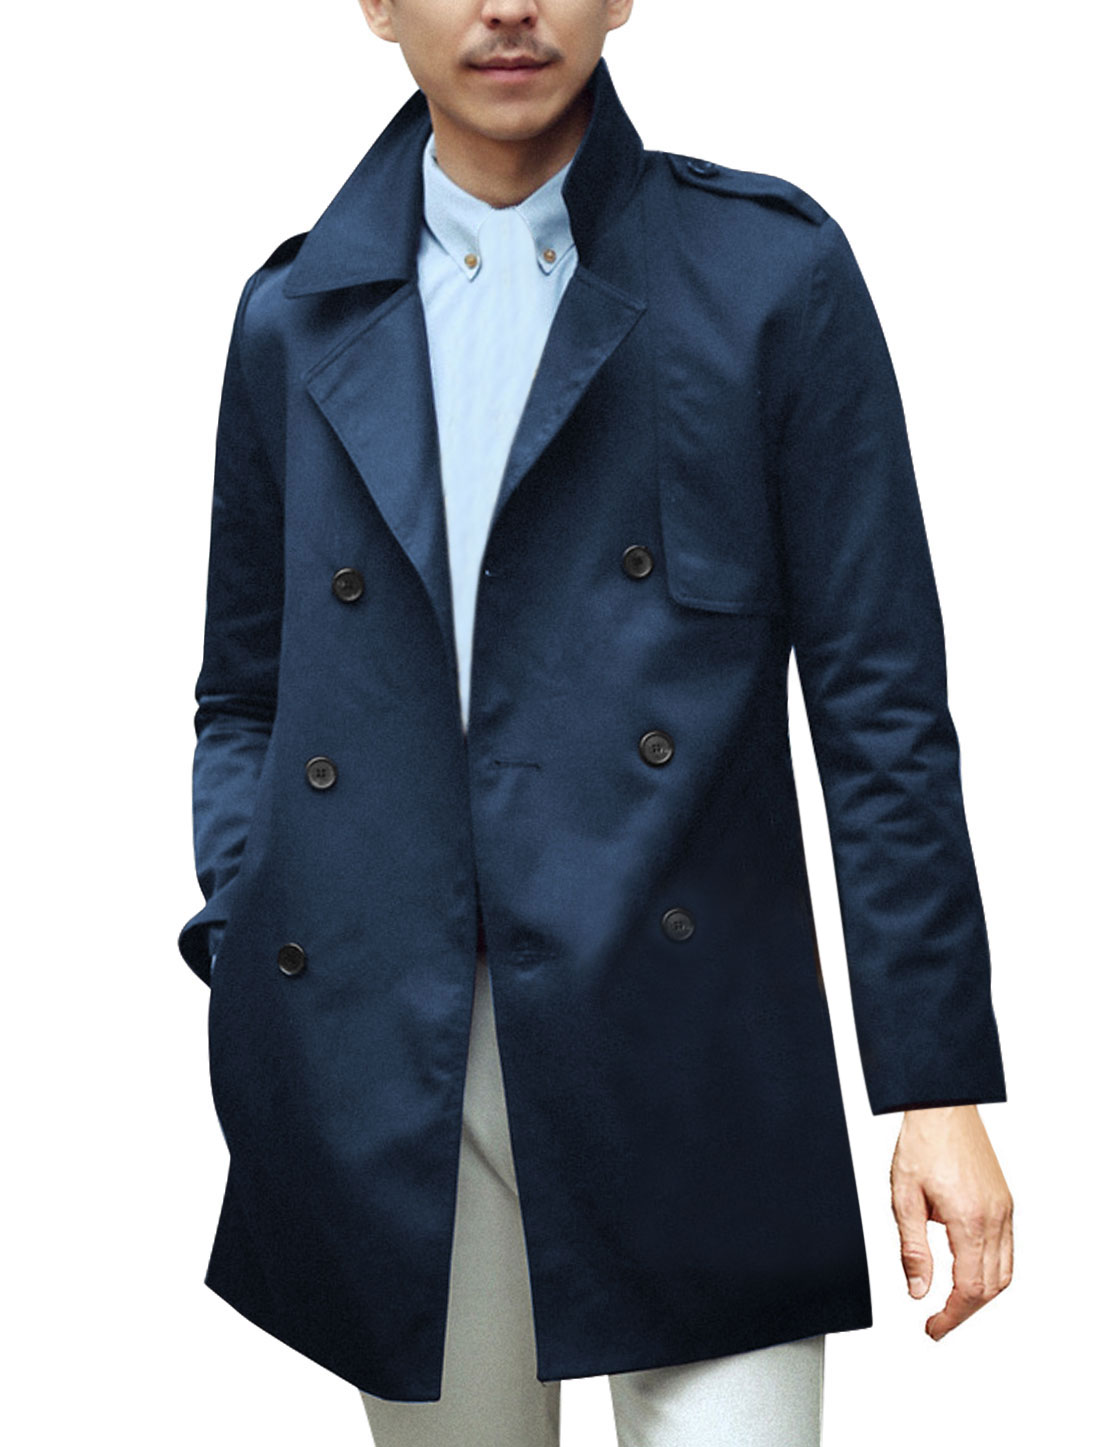 Men Notched Lapel Padded Shoulder Buttons Decor Casual Trench Navy Blue S